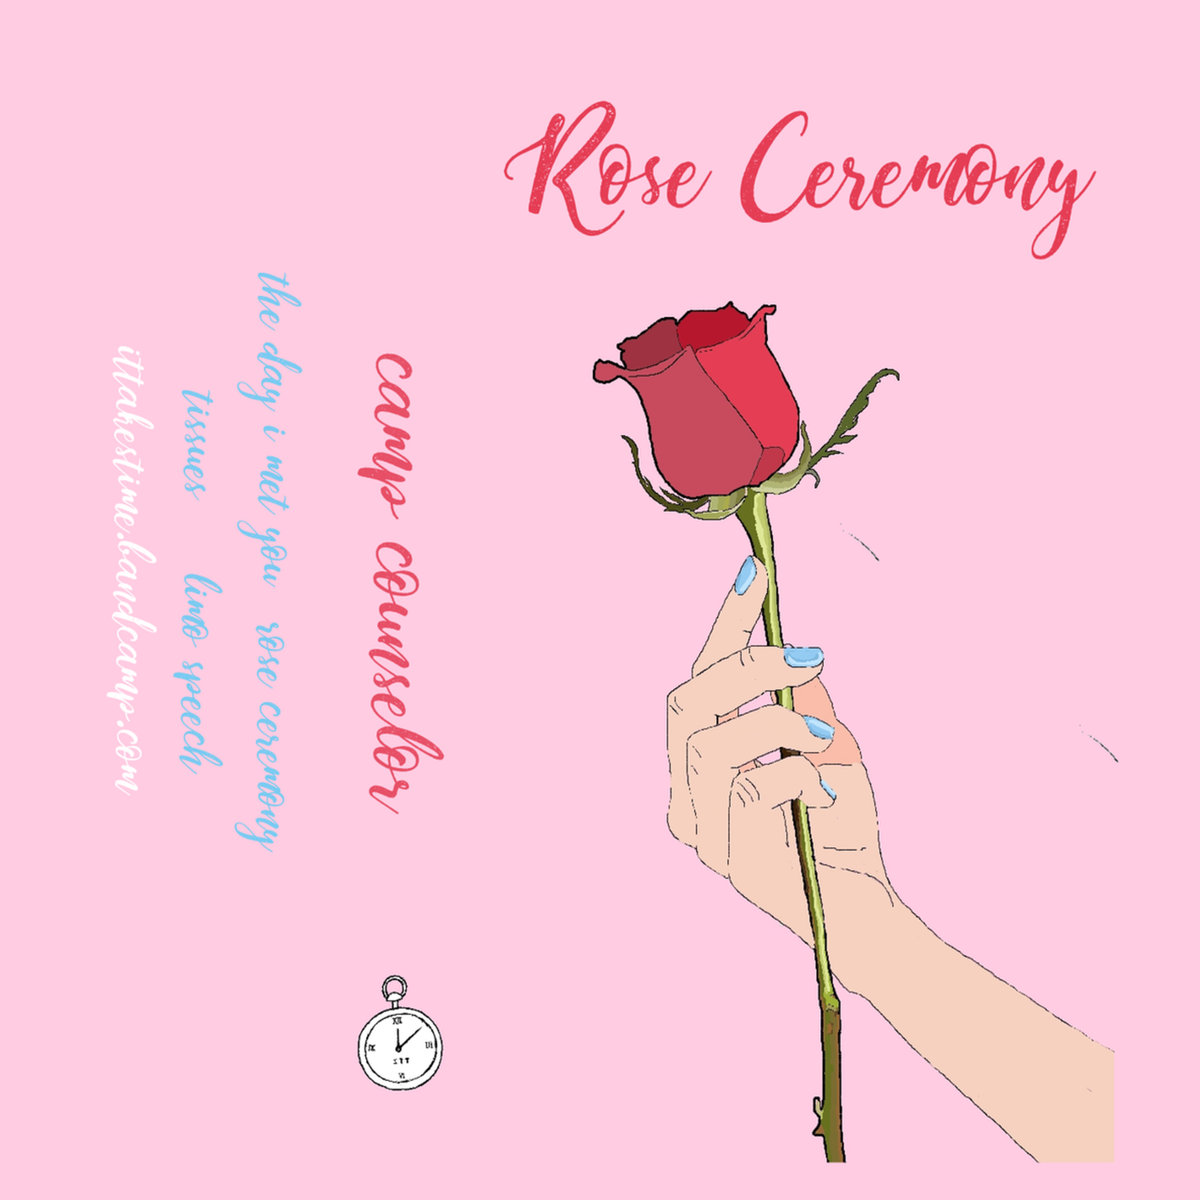 camp counselor rose ceremony album art